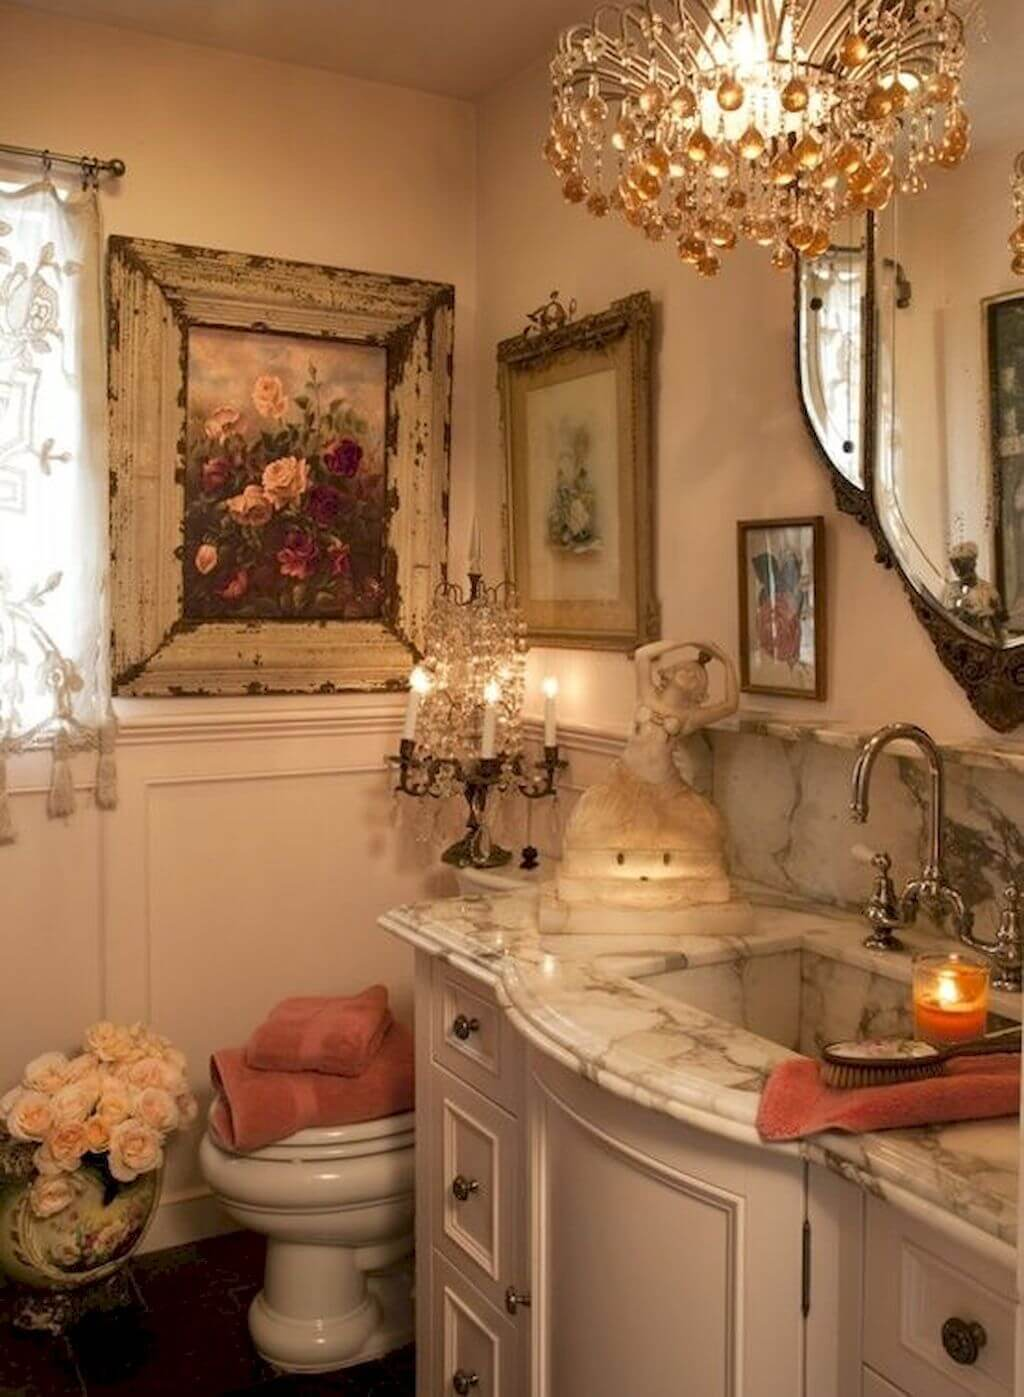 25 Stunning Shabby Chic Bathroom Designs That Will Adore You - 09559Cef13069130C26B6Be293Be80E1